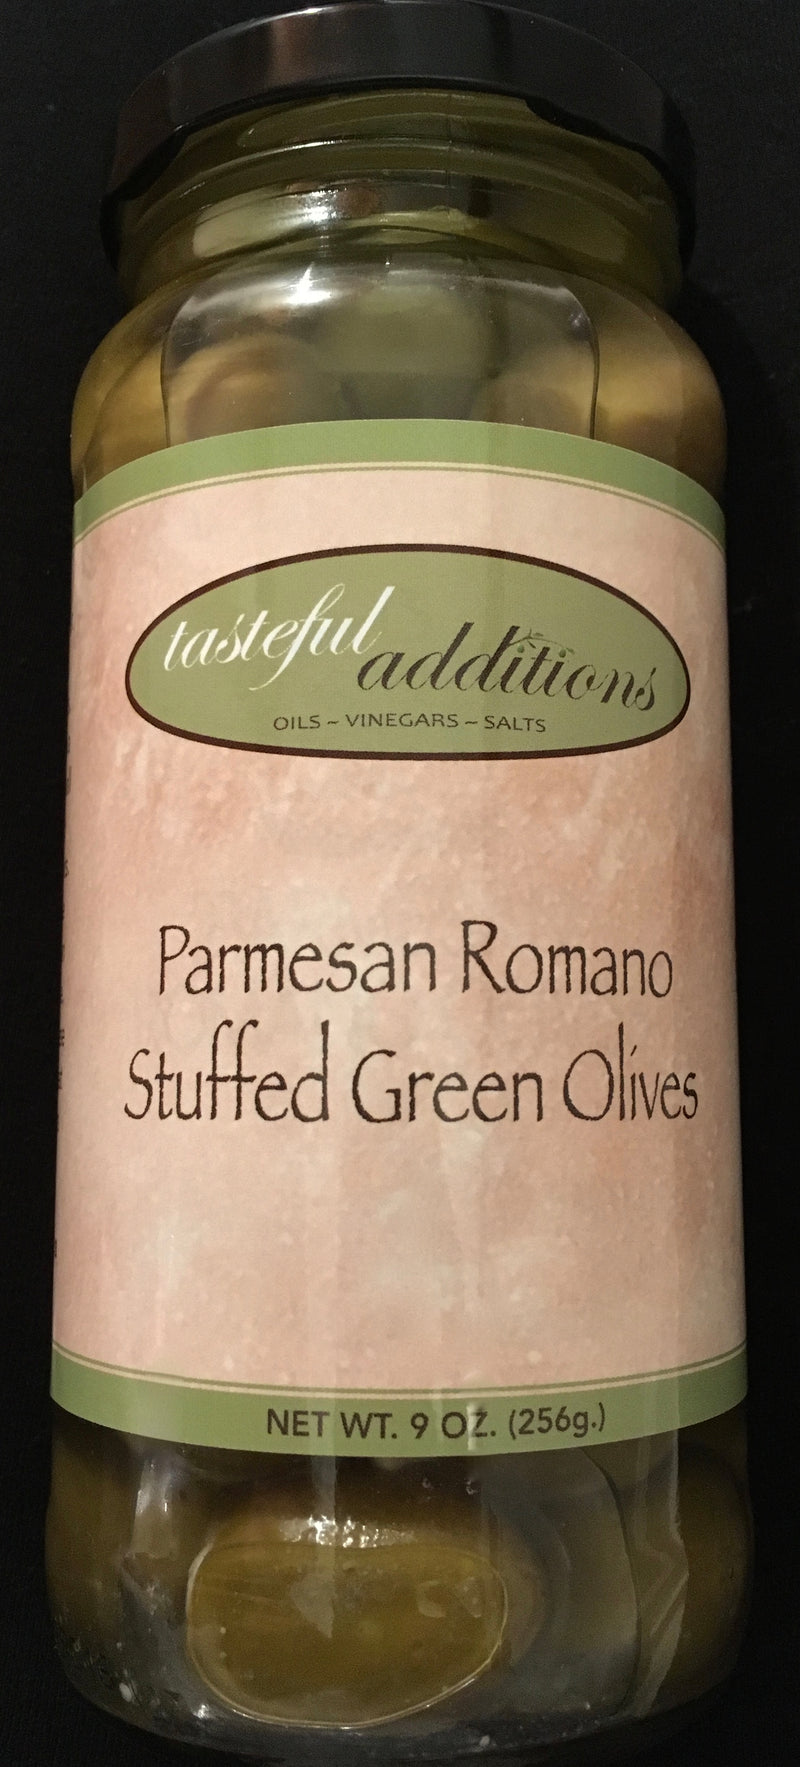 Parmesan Romano Stuffed Green Olives